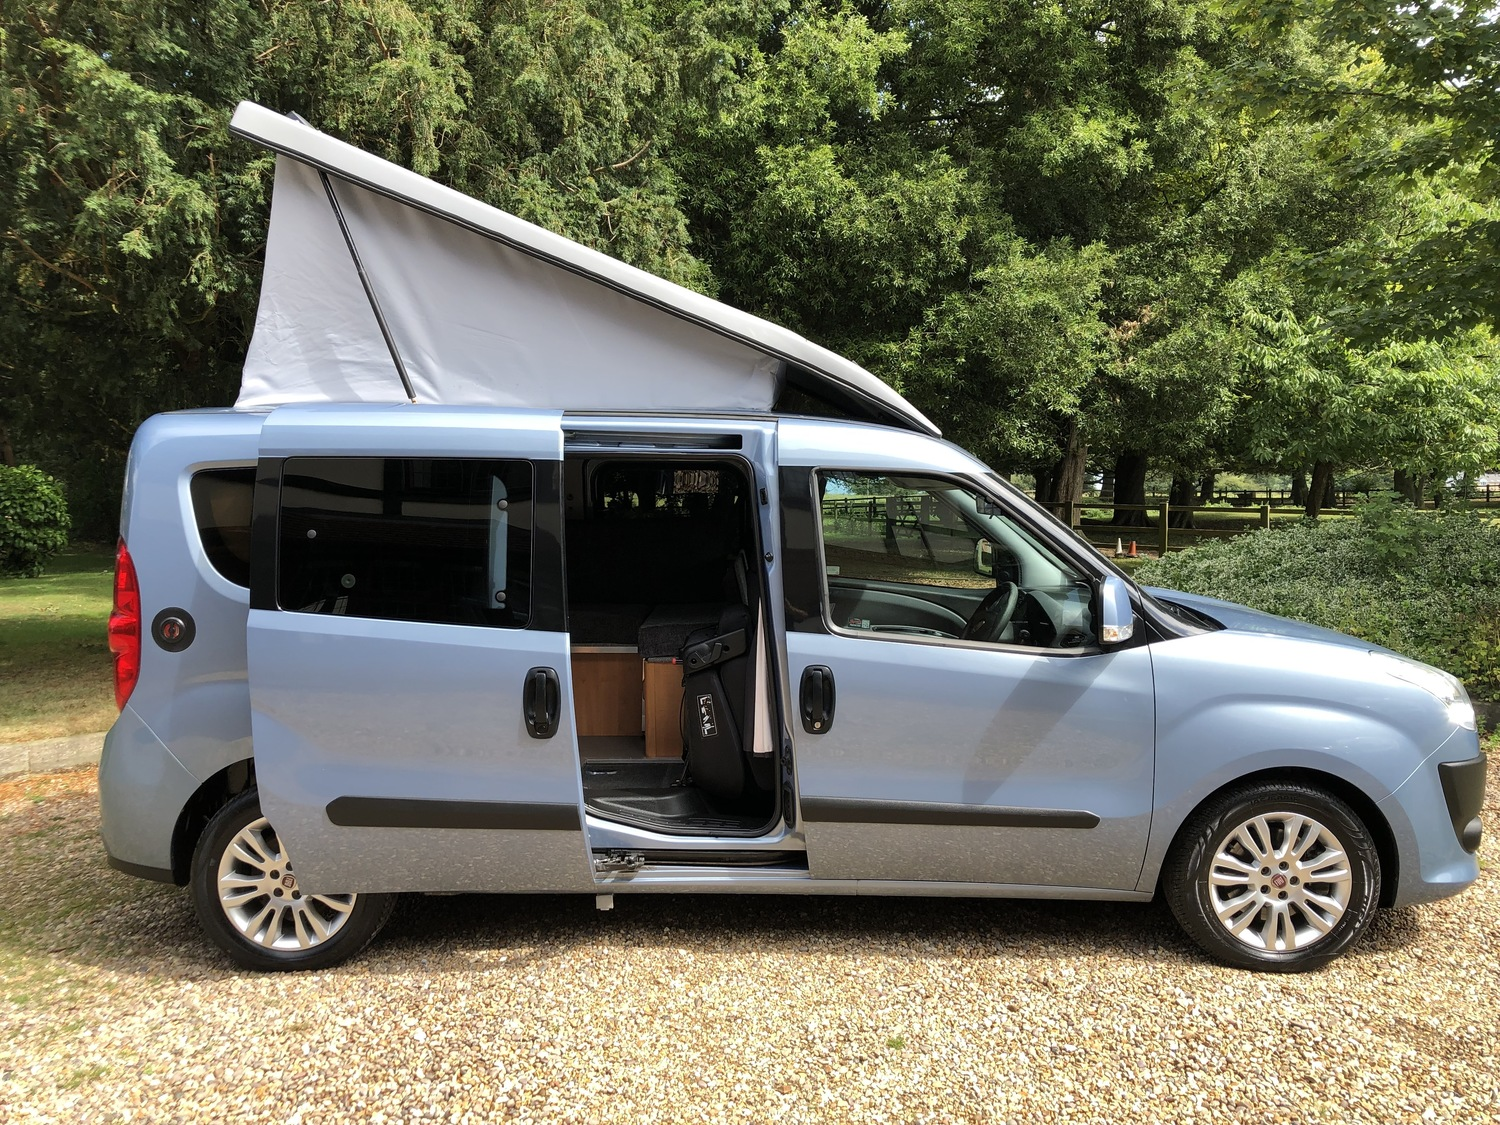 2014 Fiat Doblo Mylife Maxi Camper Van 4 Berth Amazing Specification 1 Owner Dragonville Leisure Lincolnshire Camper Vans And Motorhomes